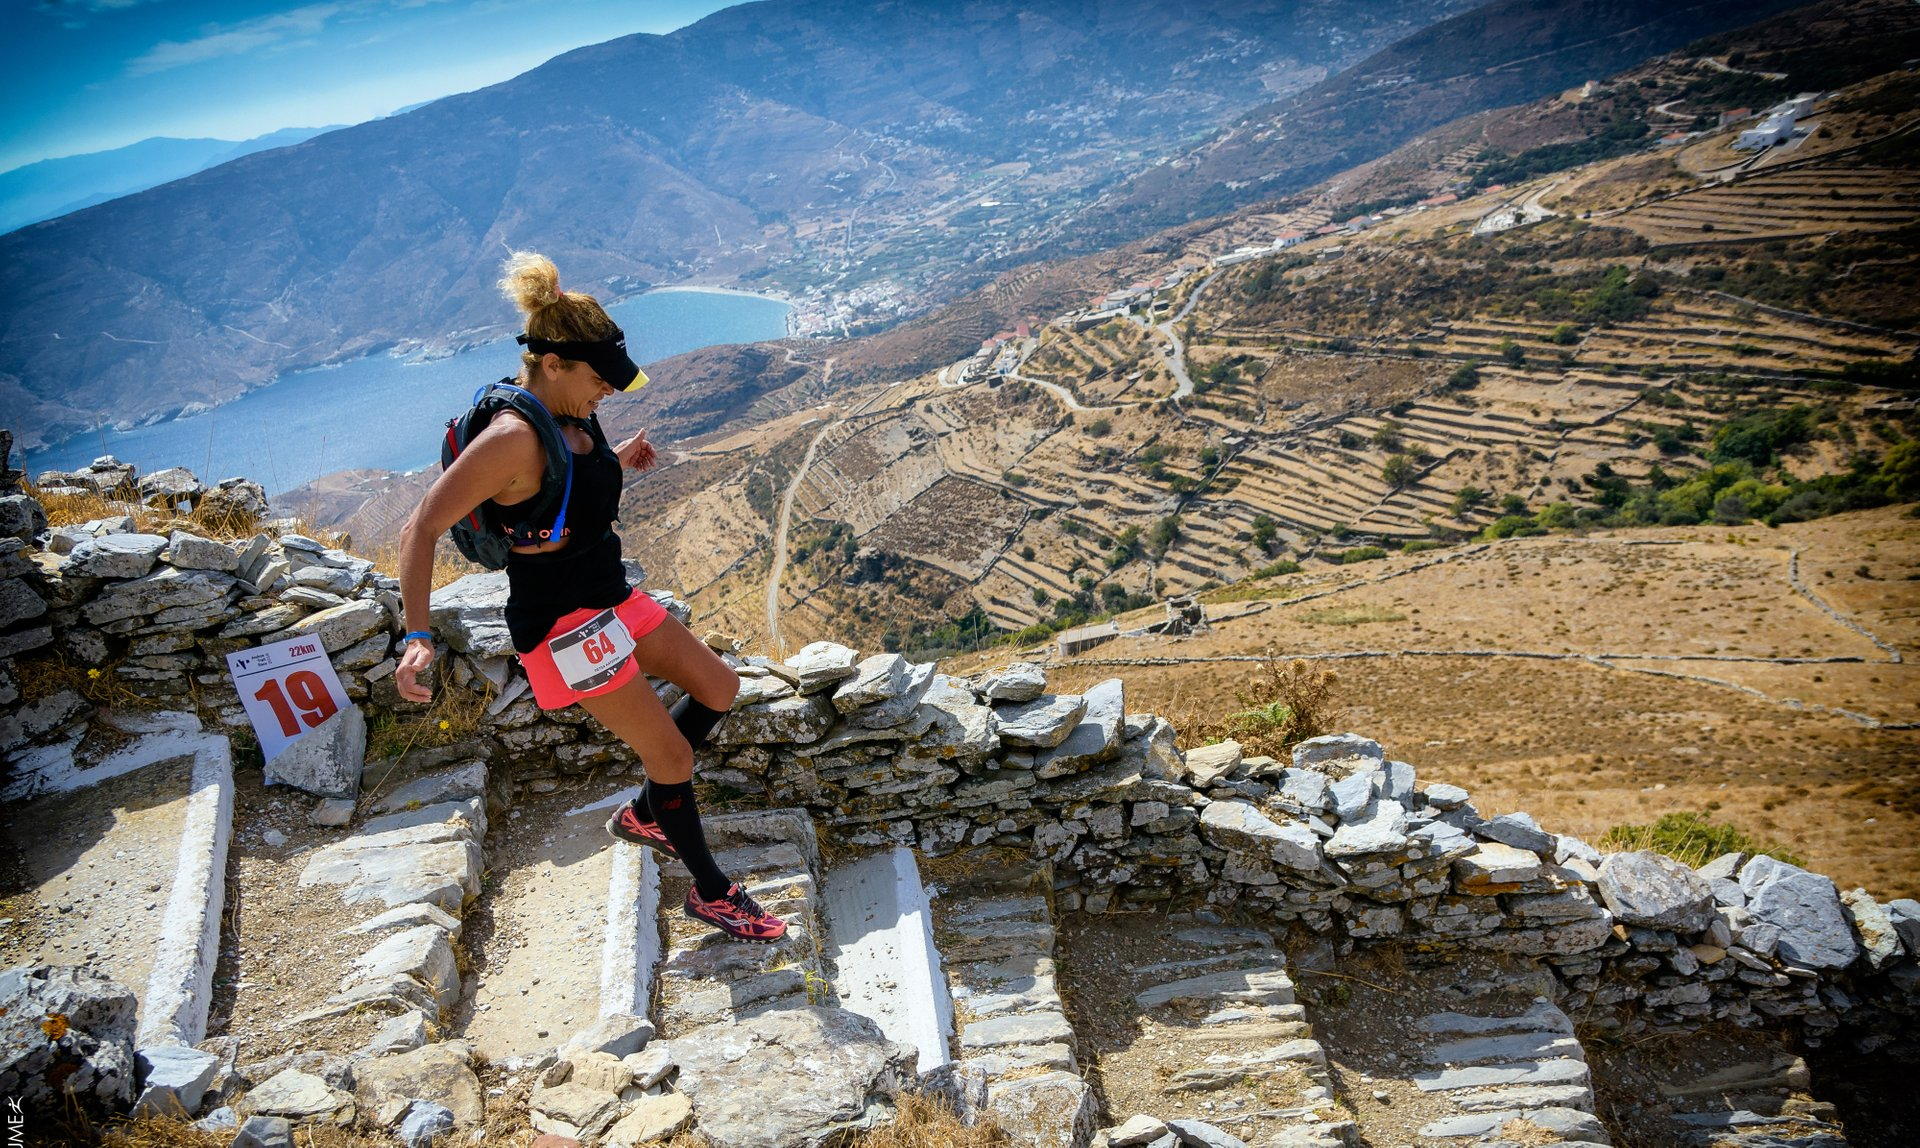 Cyclades Trail Cup in Greece 2020 - Best Time